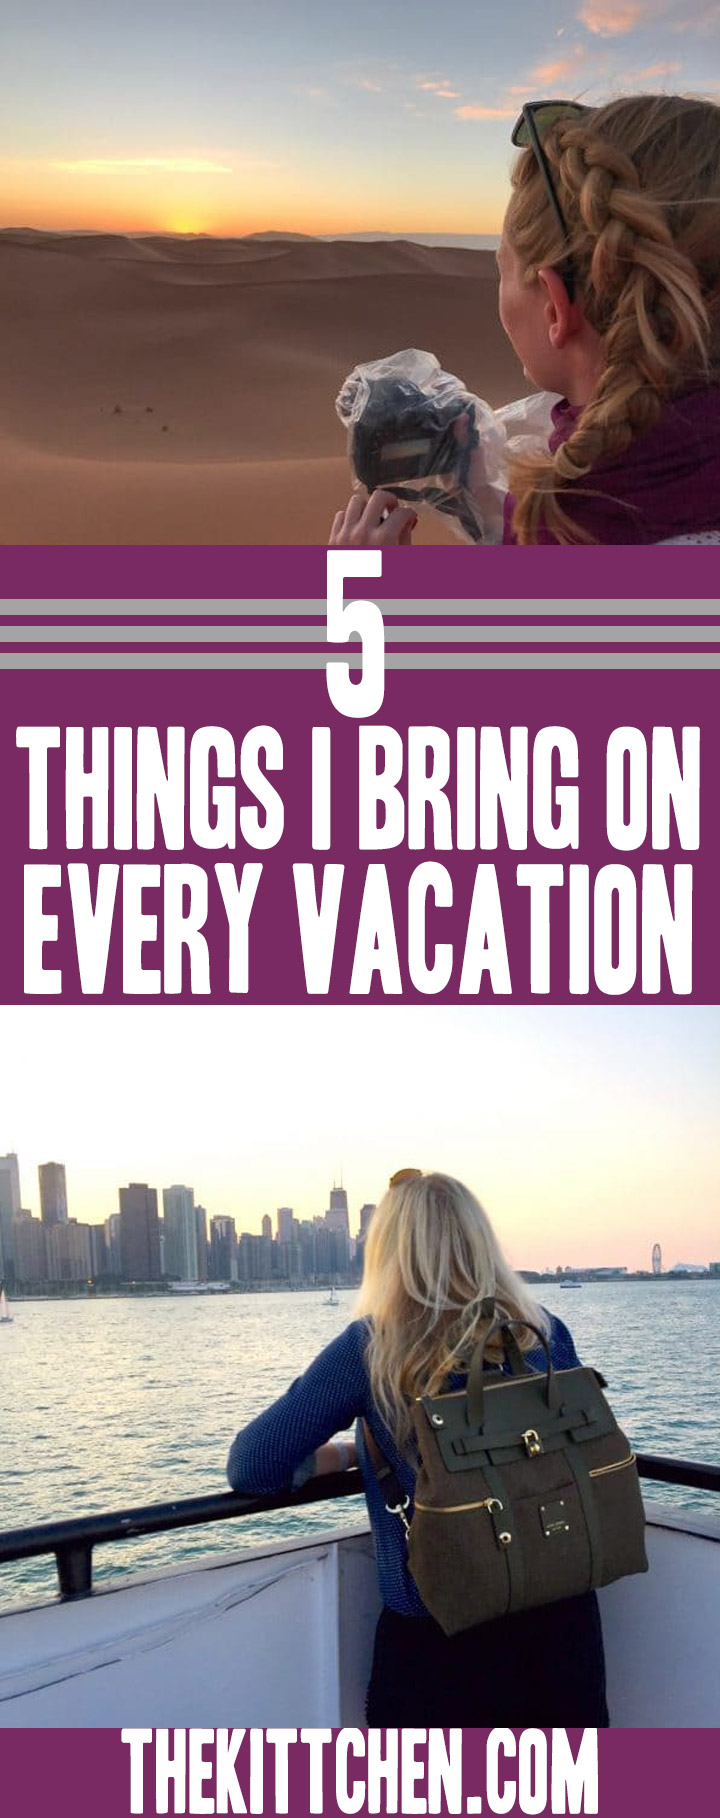 5 Things I Bring on Every Vacation